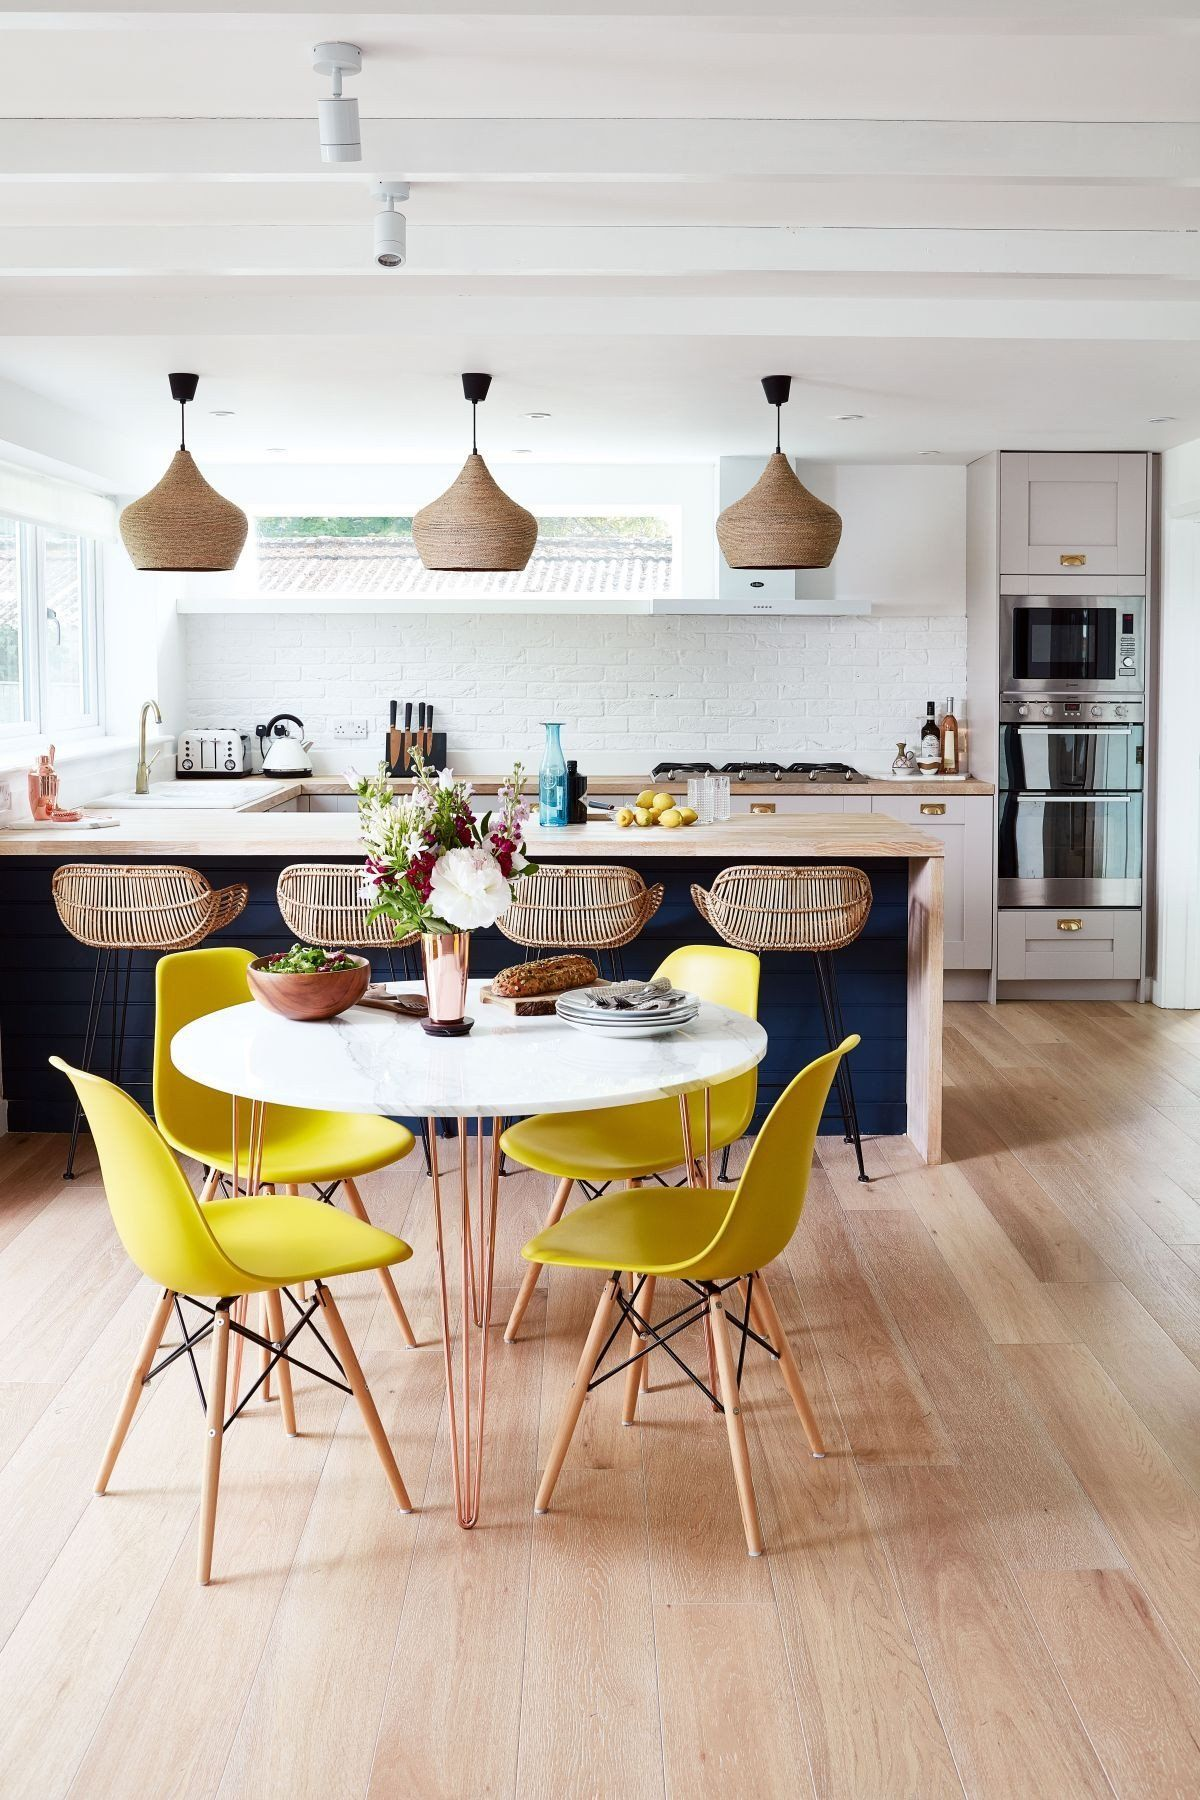 Small Open Kitchen Living Room Beautiful Open Plan Kitchen Ideas 17 Room Designs To Inspi Open Floor Plan Kitchen Kitchen Dining Living Open Plan Kitchen Diner